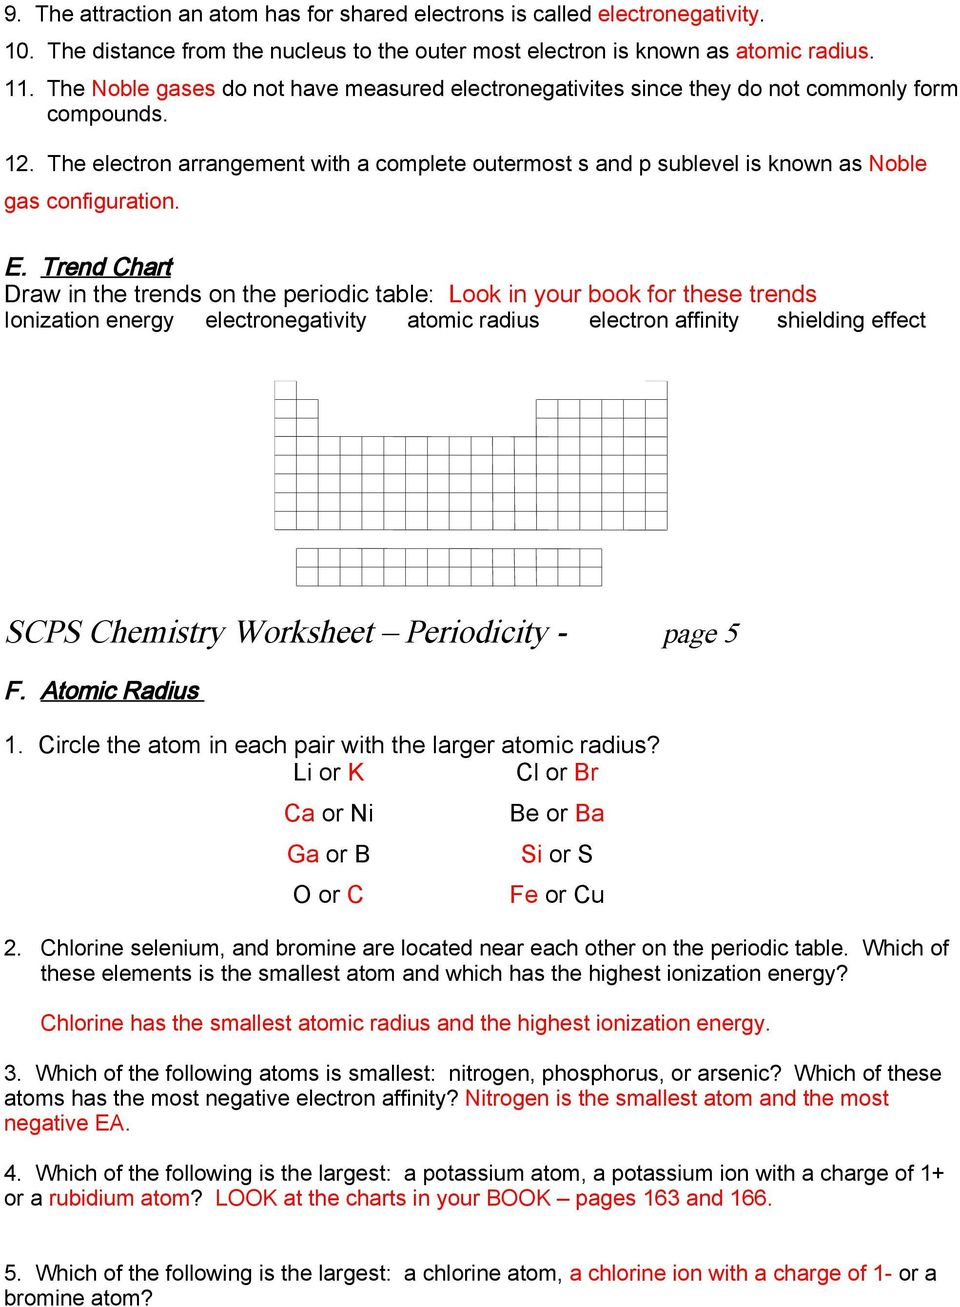 Scps chemistry worksheet periodicity a periodic table 1 which are the electron arrangement with a complete outermost s and p sublevel is known as noble gas urtaz Images